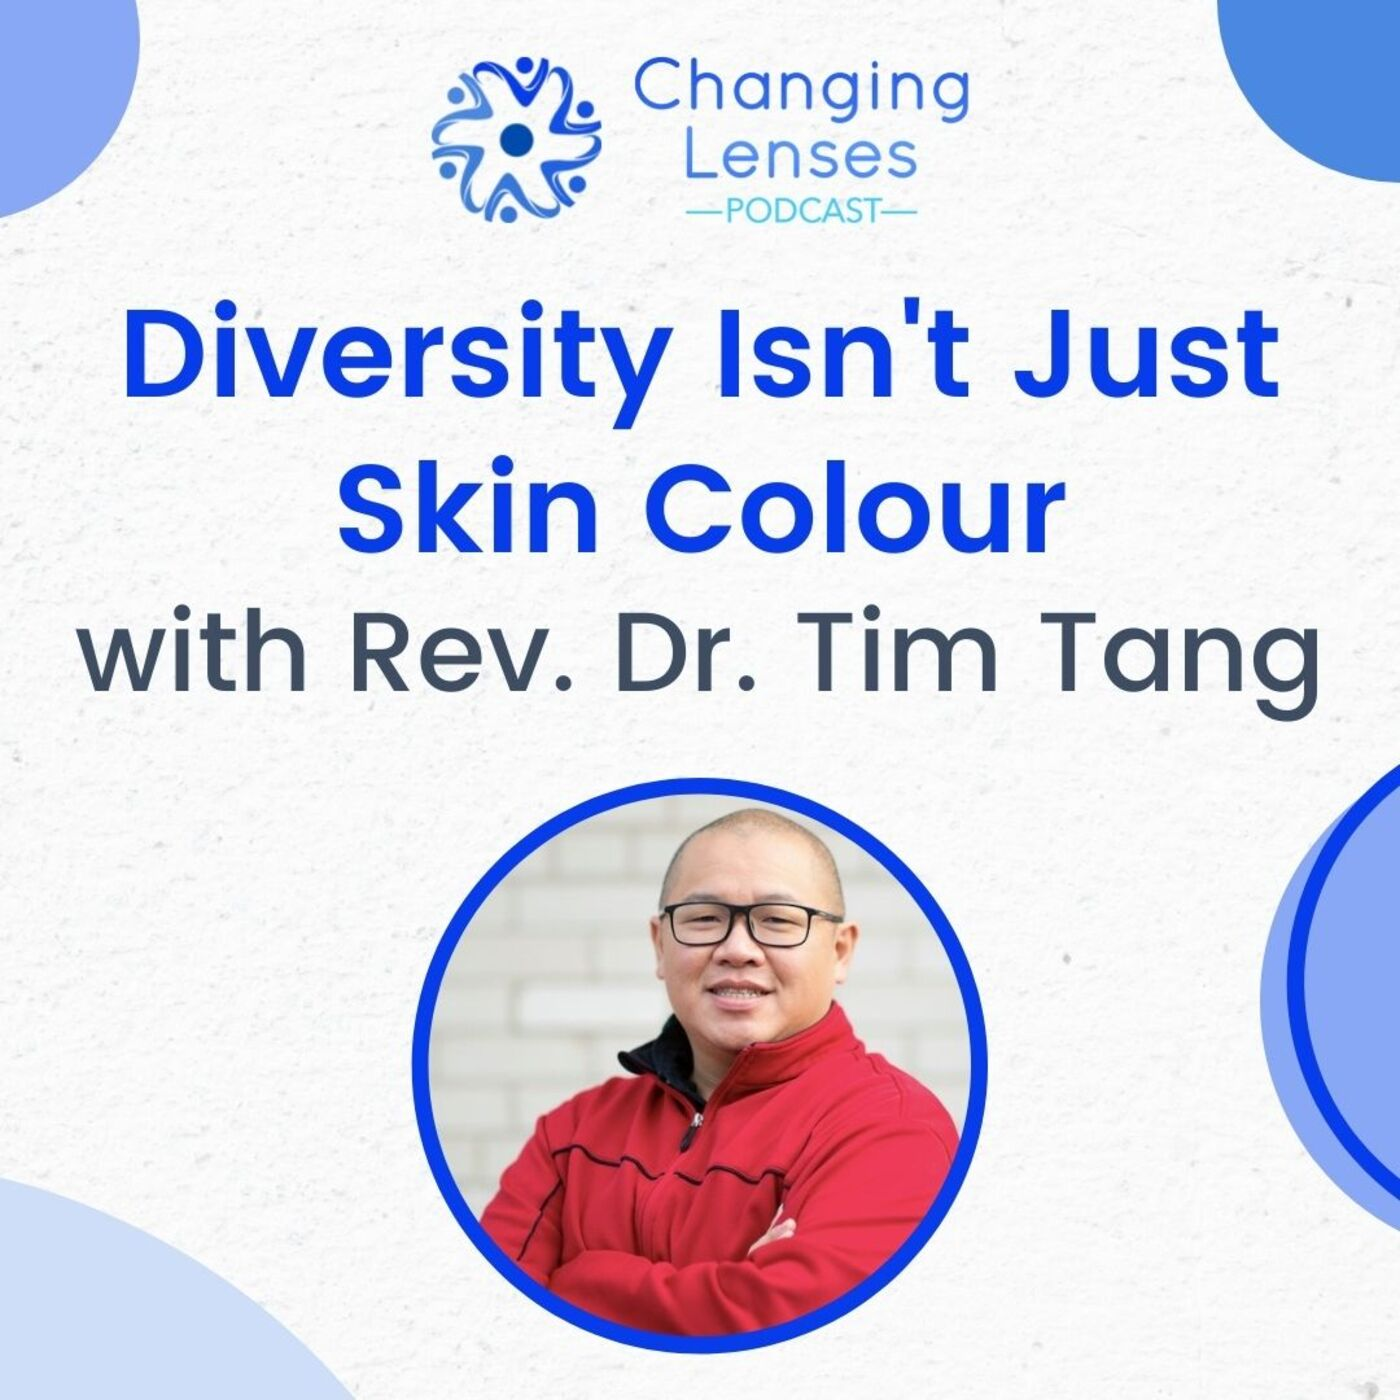 Ep09: Diversity Isn't Just Skin Colour, with Rev. Dr. Timothy Tang